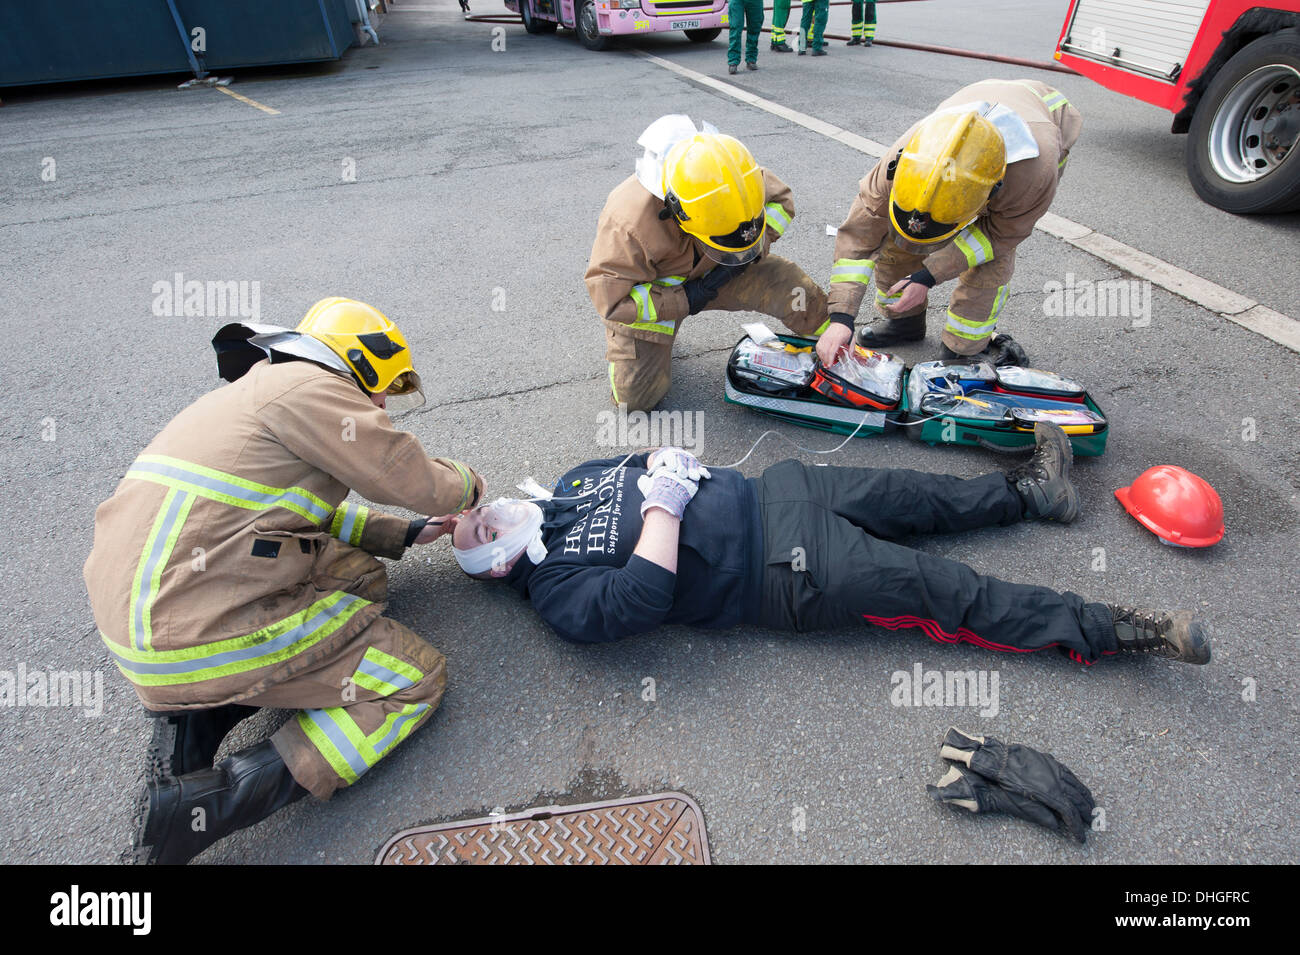 Casualty Simulation Firephoto Stockfotos & Casualty Simulation ...